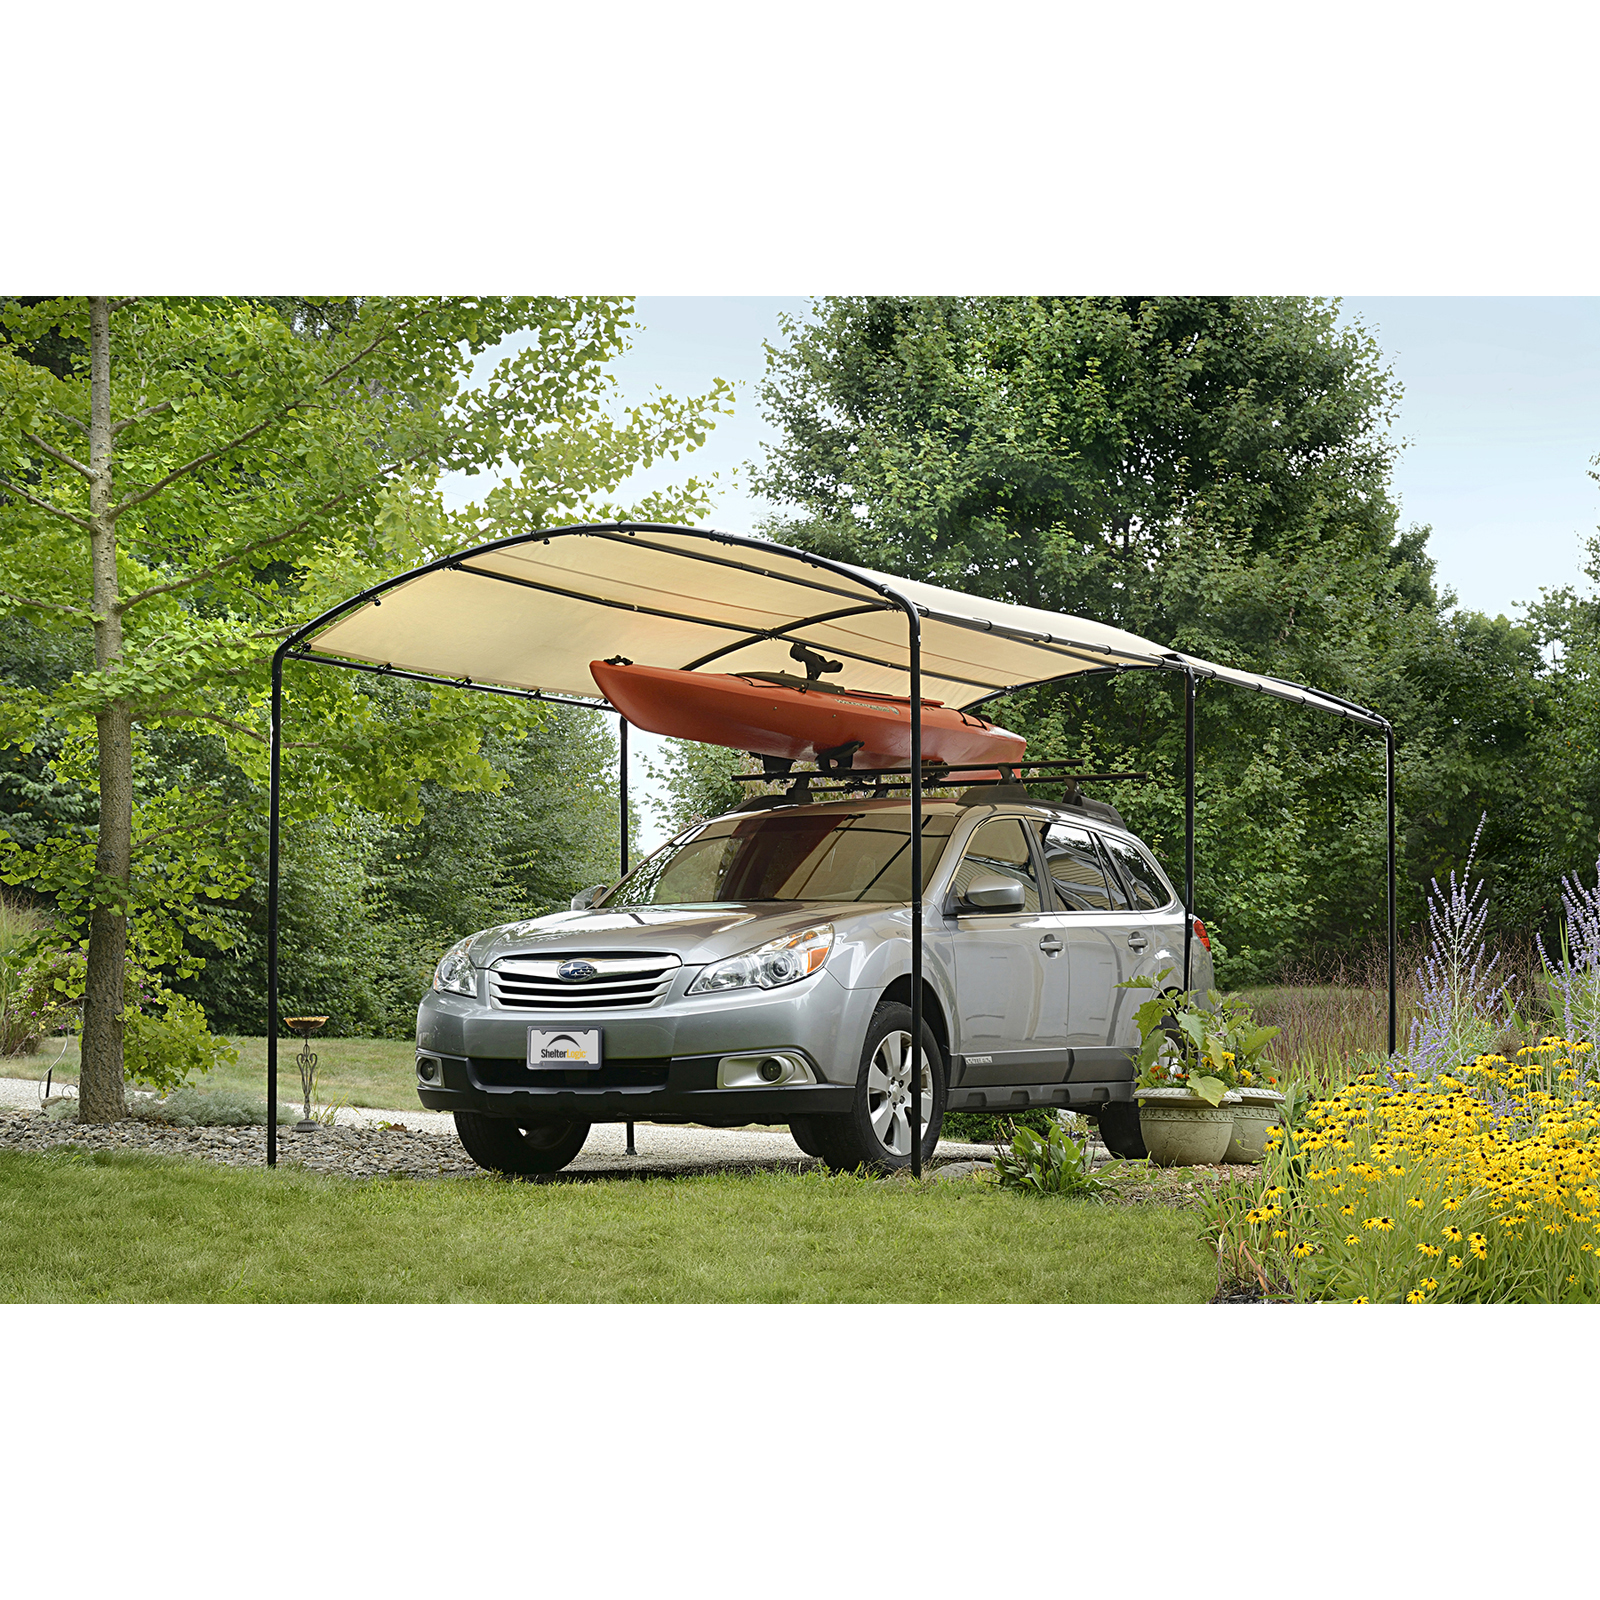 shelterlogic monarc car canopy ZNADMOH